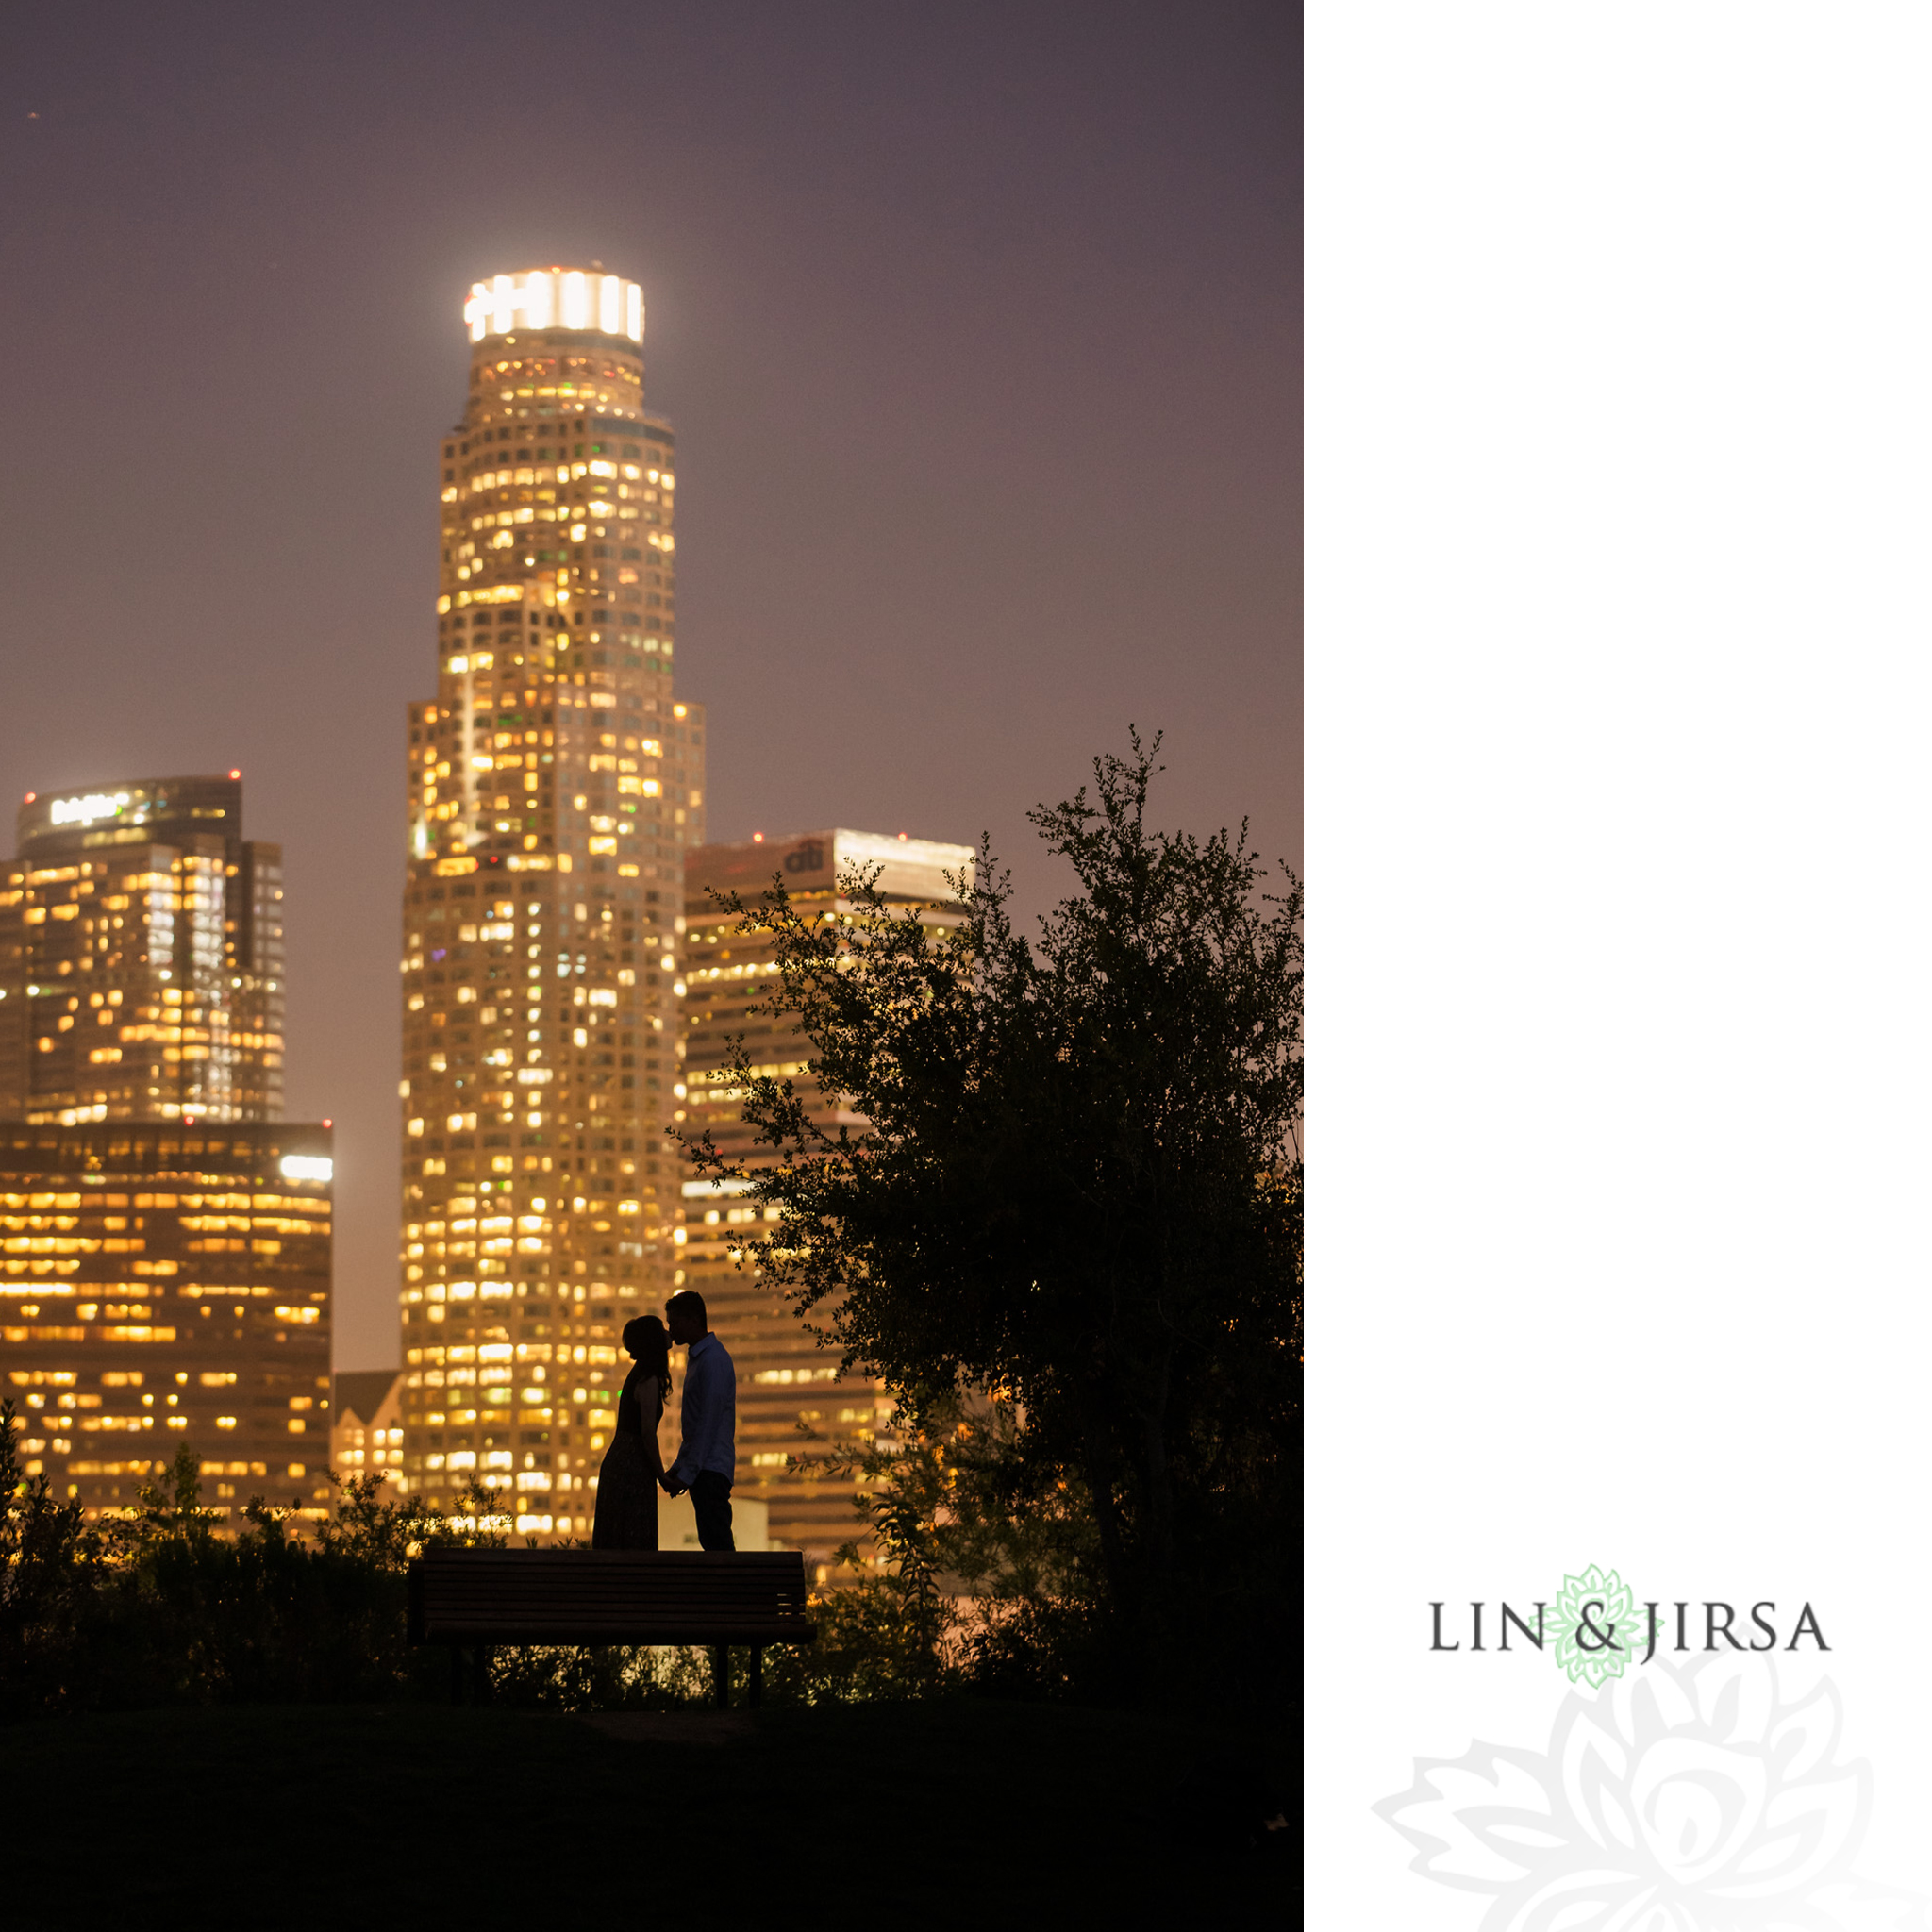 15 Vista Hermosa Natural Park Los Angeles Engagement City Lights Night Photography